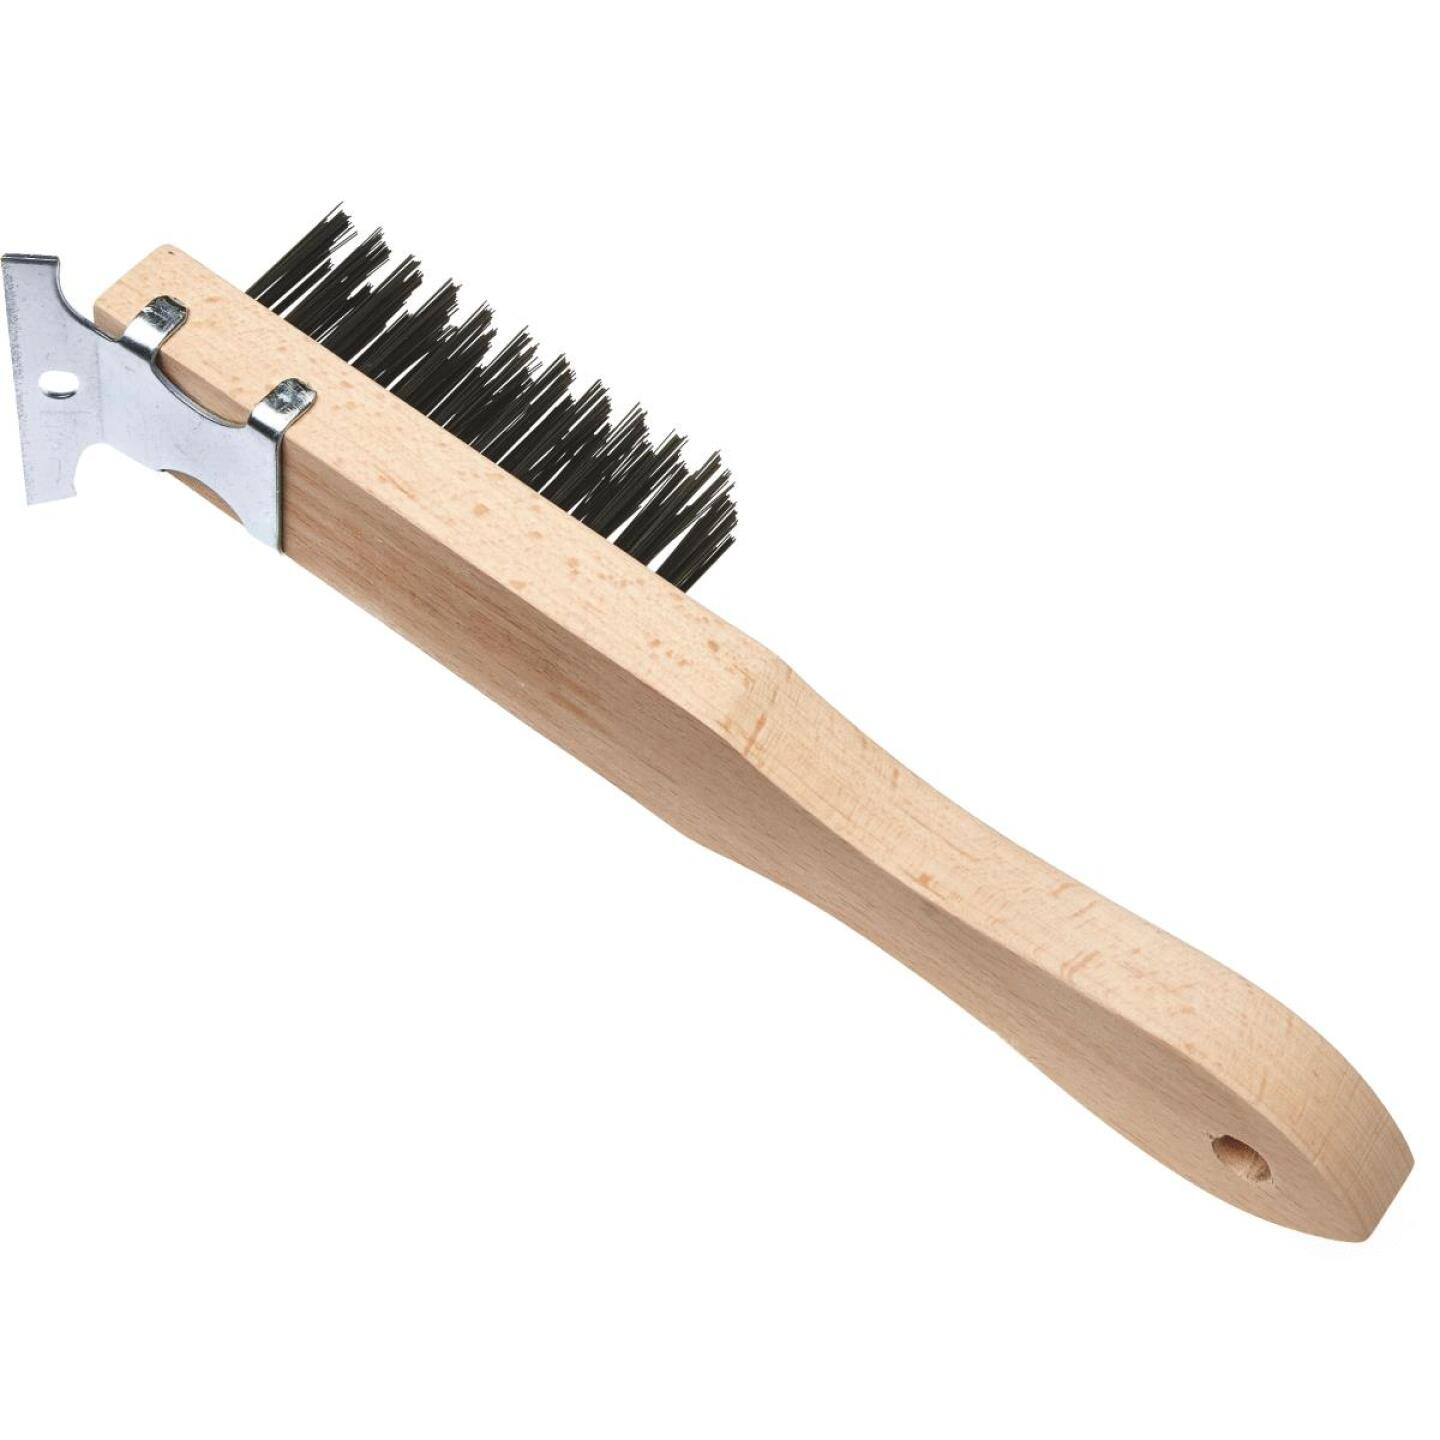 Best Look Straight Wood Handle Wire Brush with Scraper Image 1